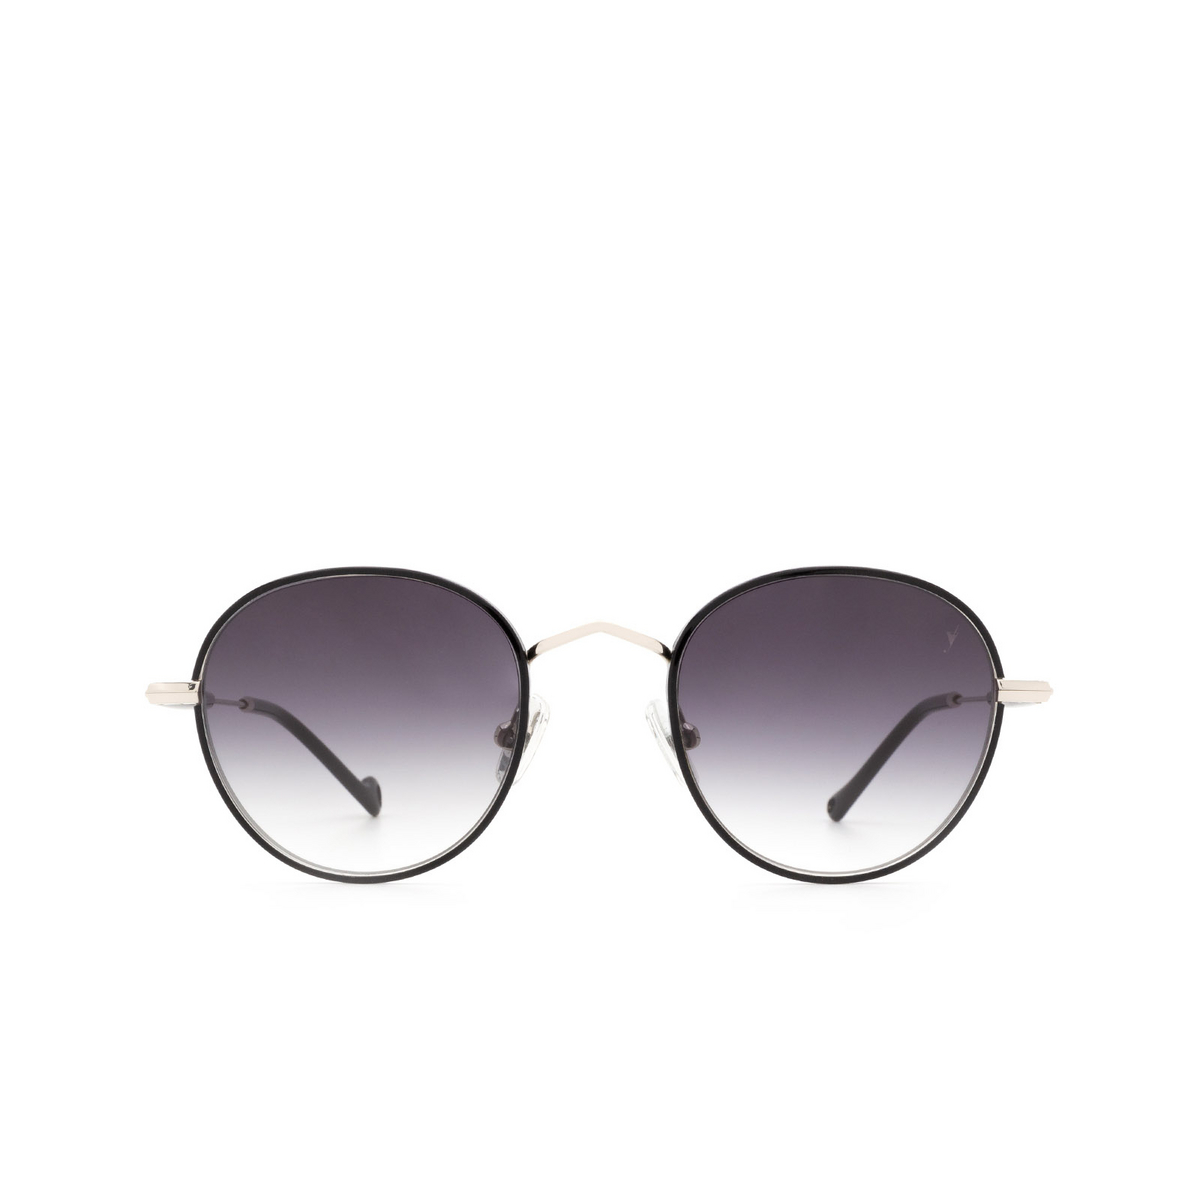 Eyepetizer® Round Sunglasses: Cinq color Black C.1-F-A-27 - front view.